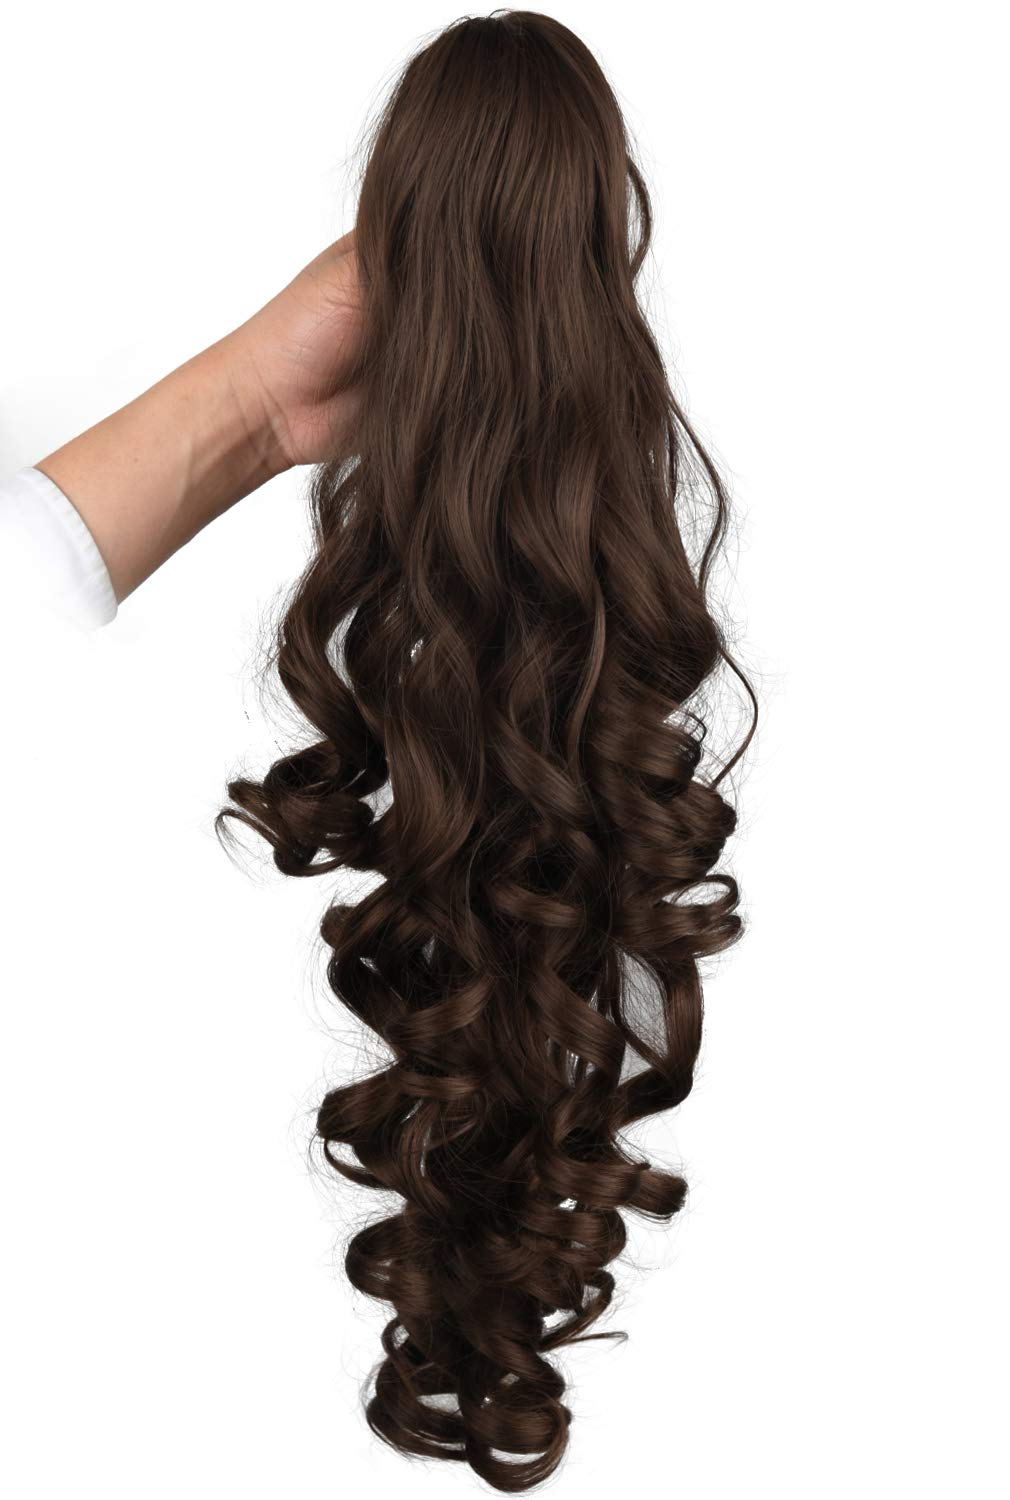 SEIKEA 24 Inch Claw Clip Ponytail Extension Long Curly Pony Tail Jaw in with Grip Wavy Hair - Dark Chocolate Brown by SEIKEA